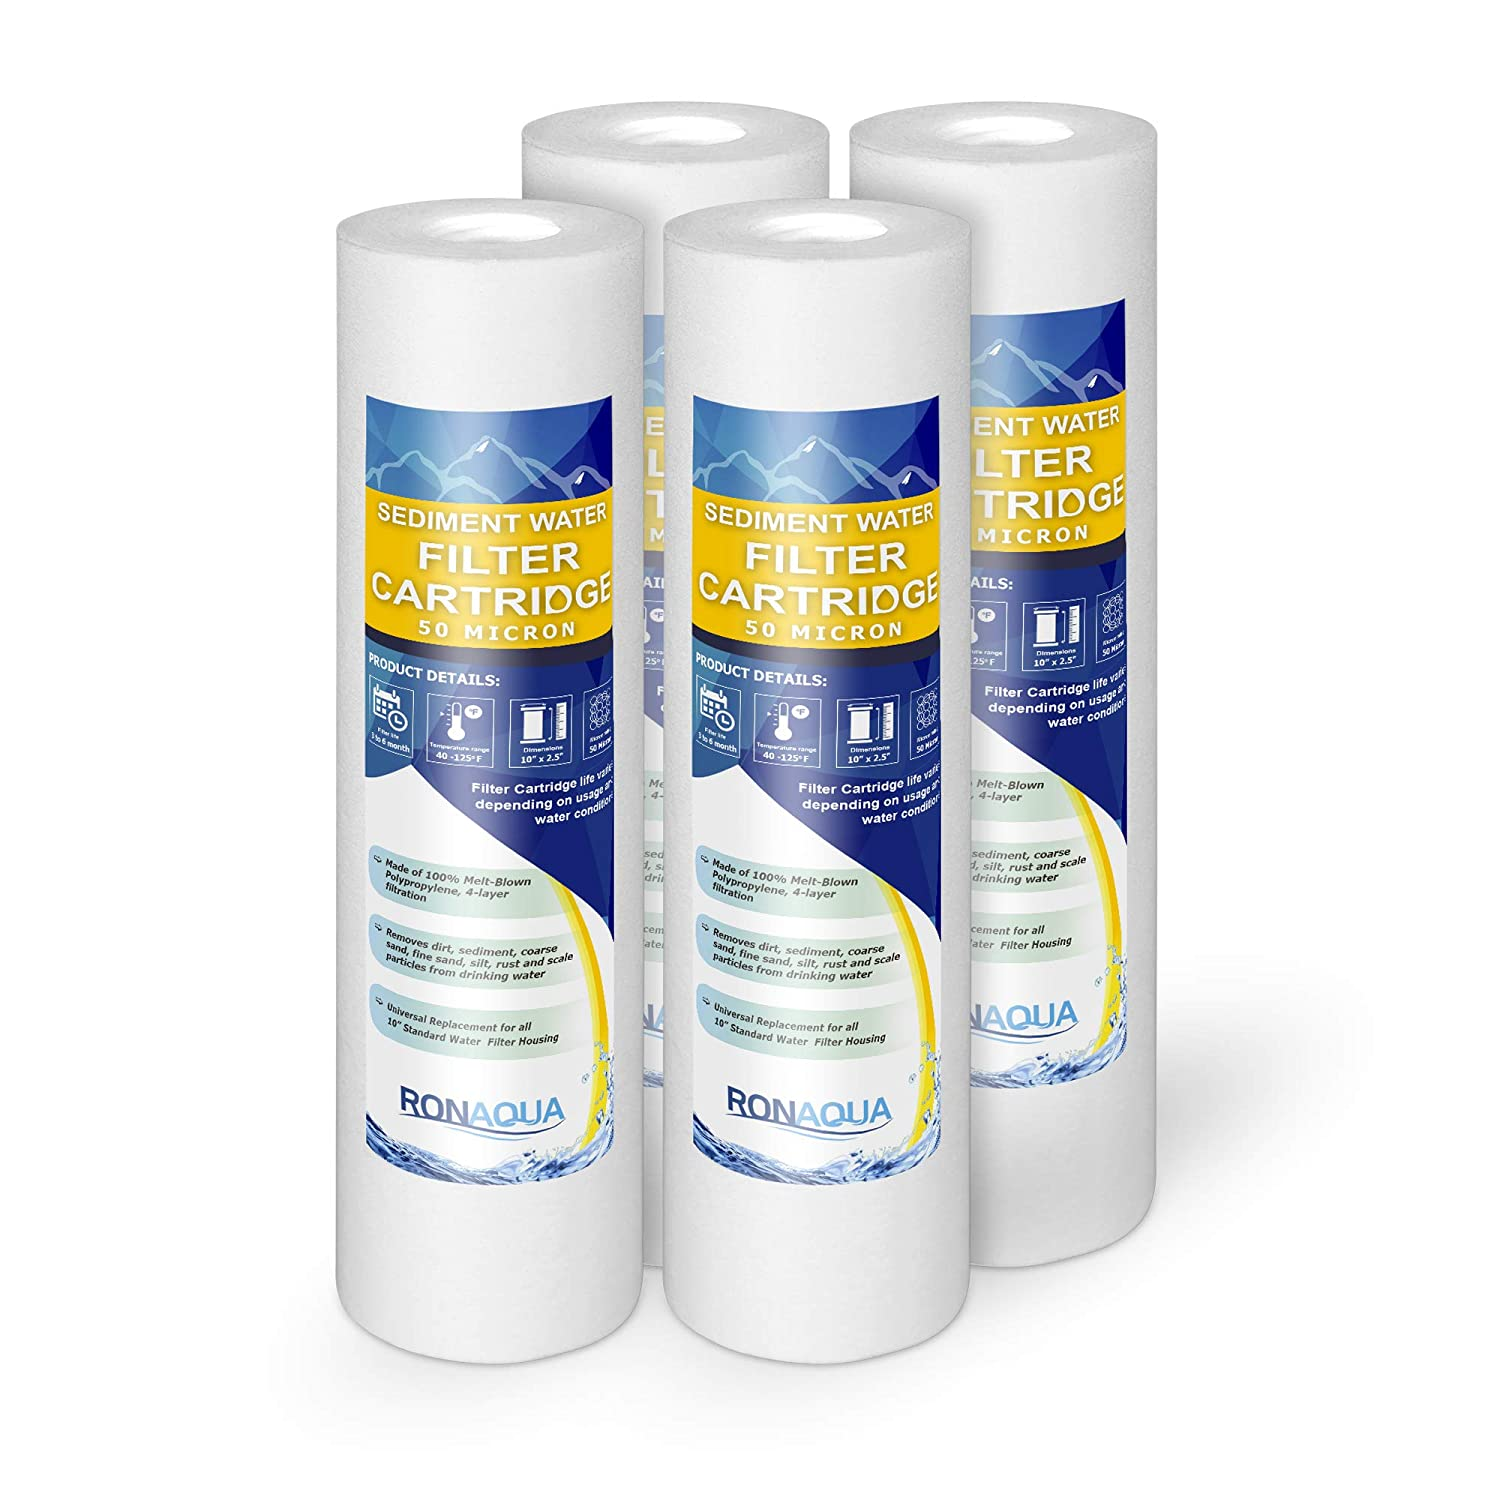 50M-4PK 50-Micron Sediment Water Filter Cartridge WELL-MATCHED with P5, AP110, WFPFC5002, CFS110, RS14, WHKF-GD05, 4-Pack